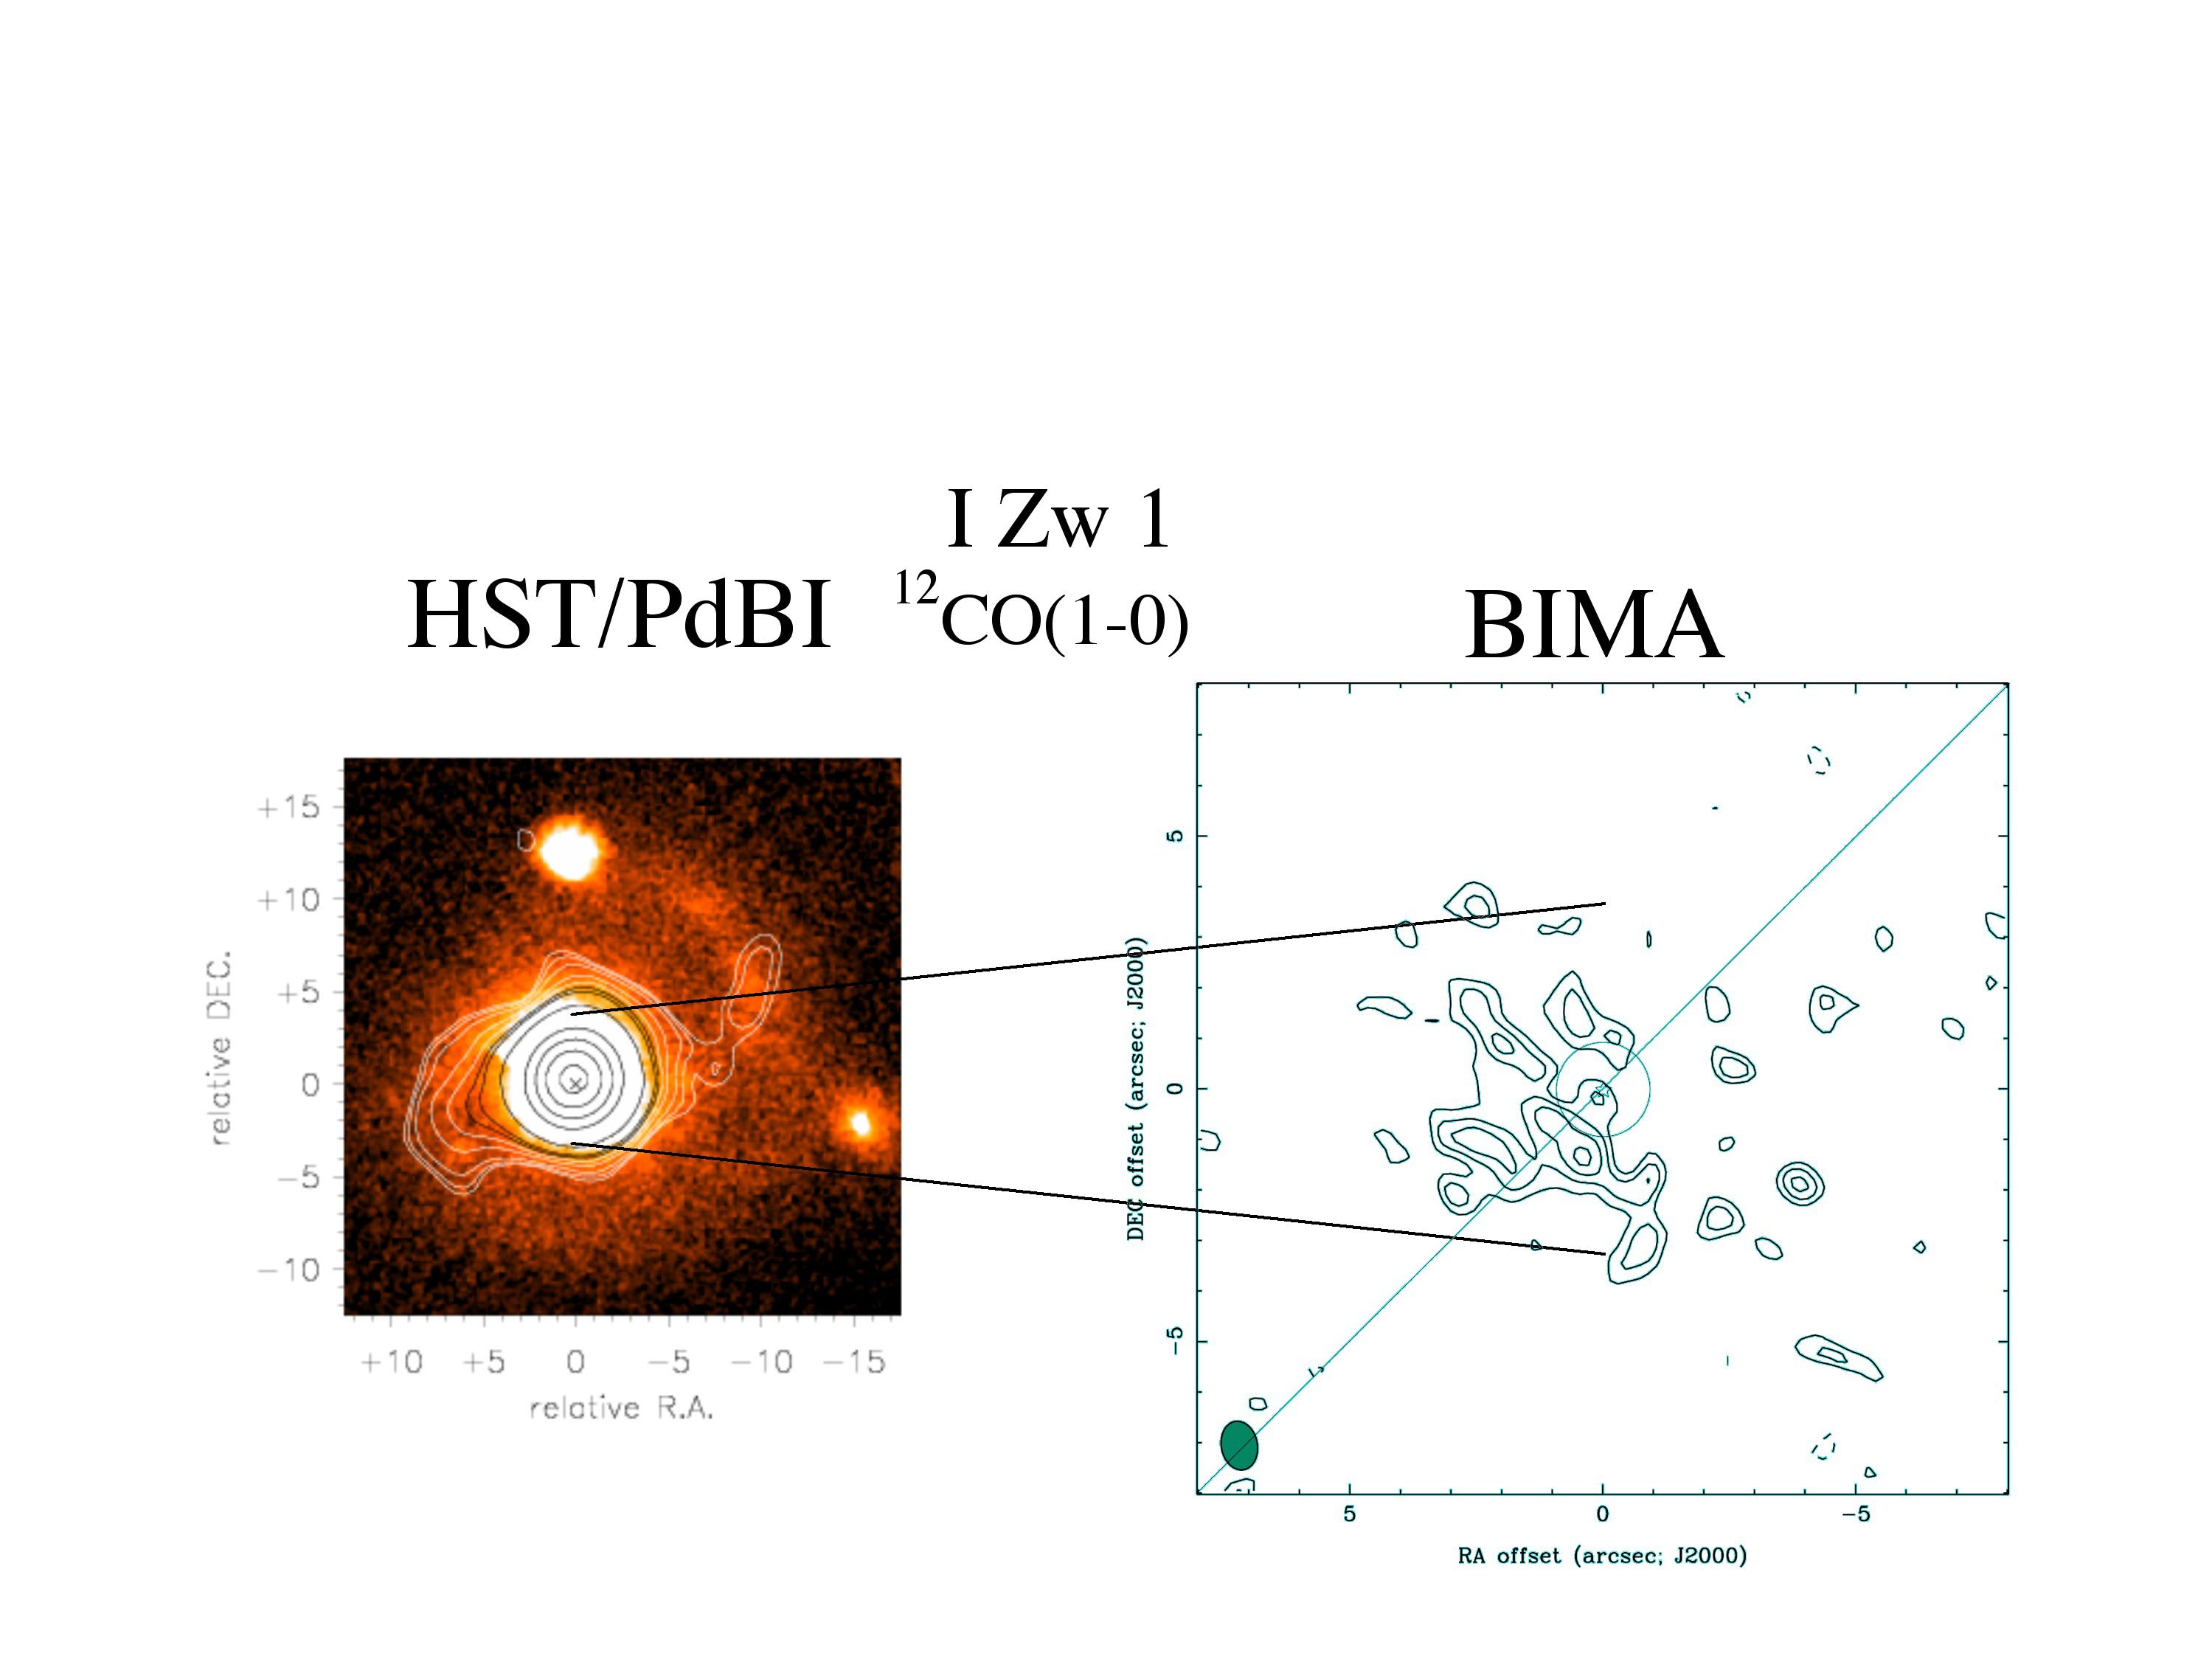 Nasa Top Story Astronomers Glimpse Feeding Of A Galactic Dragon Quasar Engine Diagram 262 Kb Image